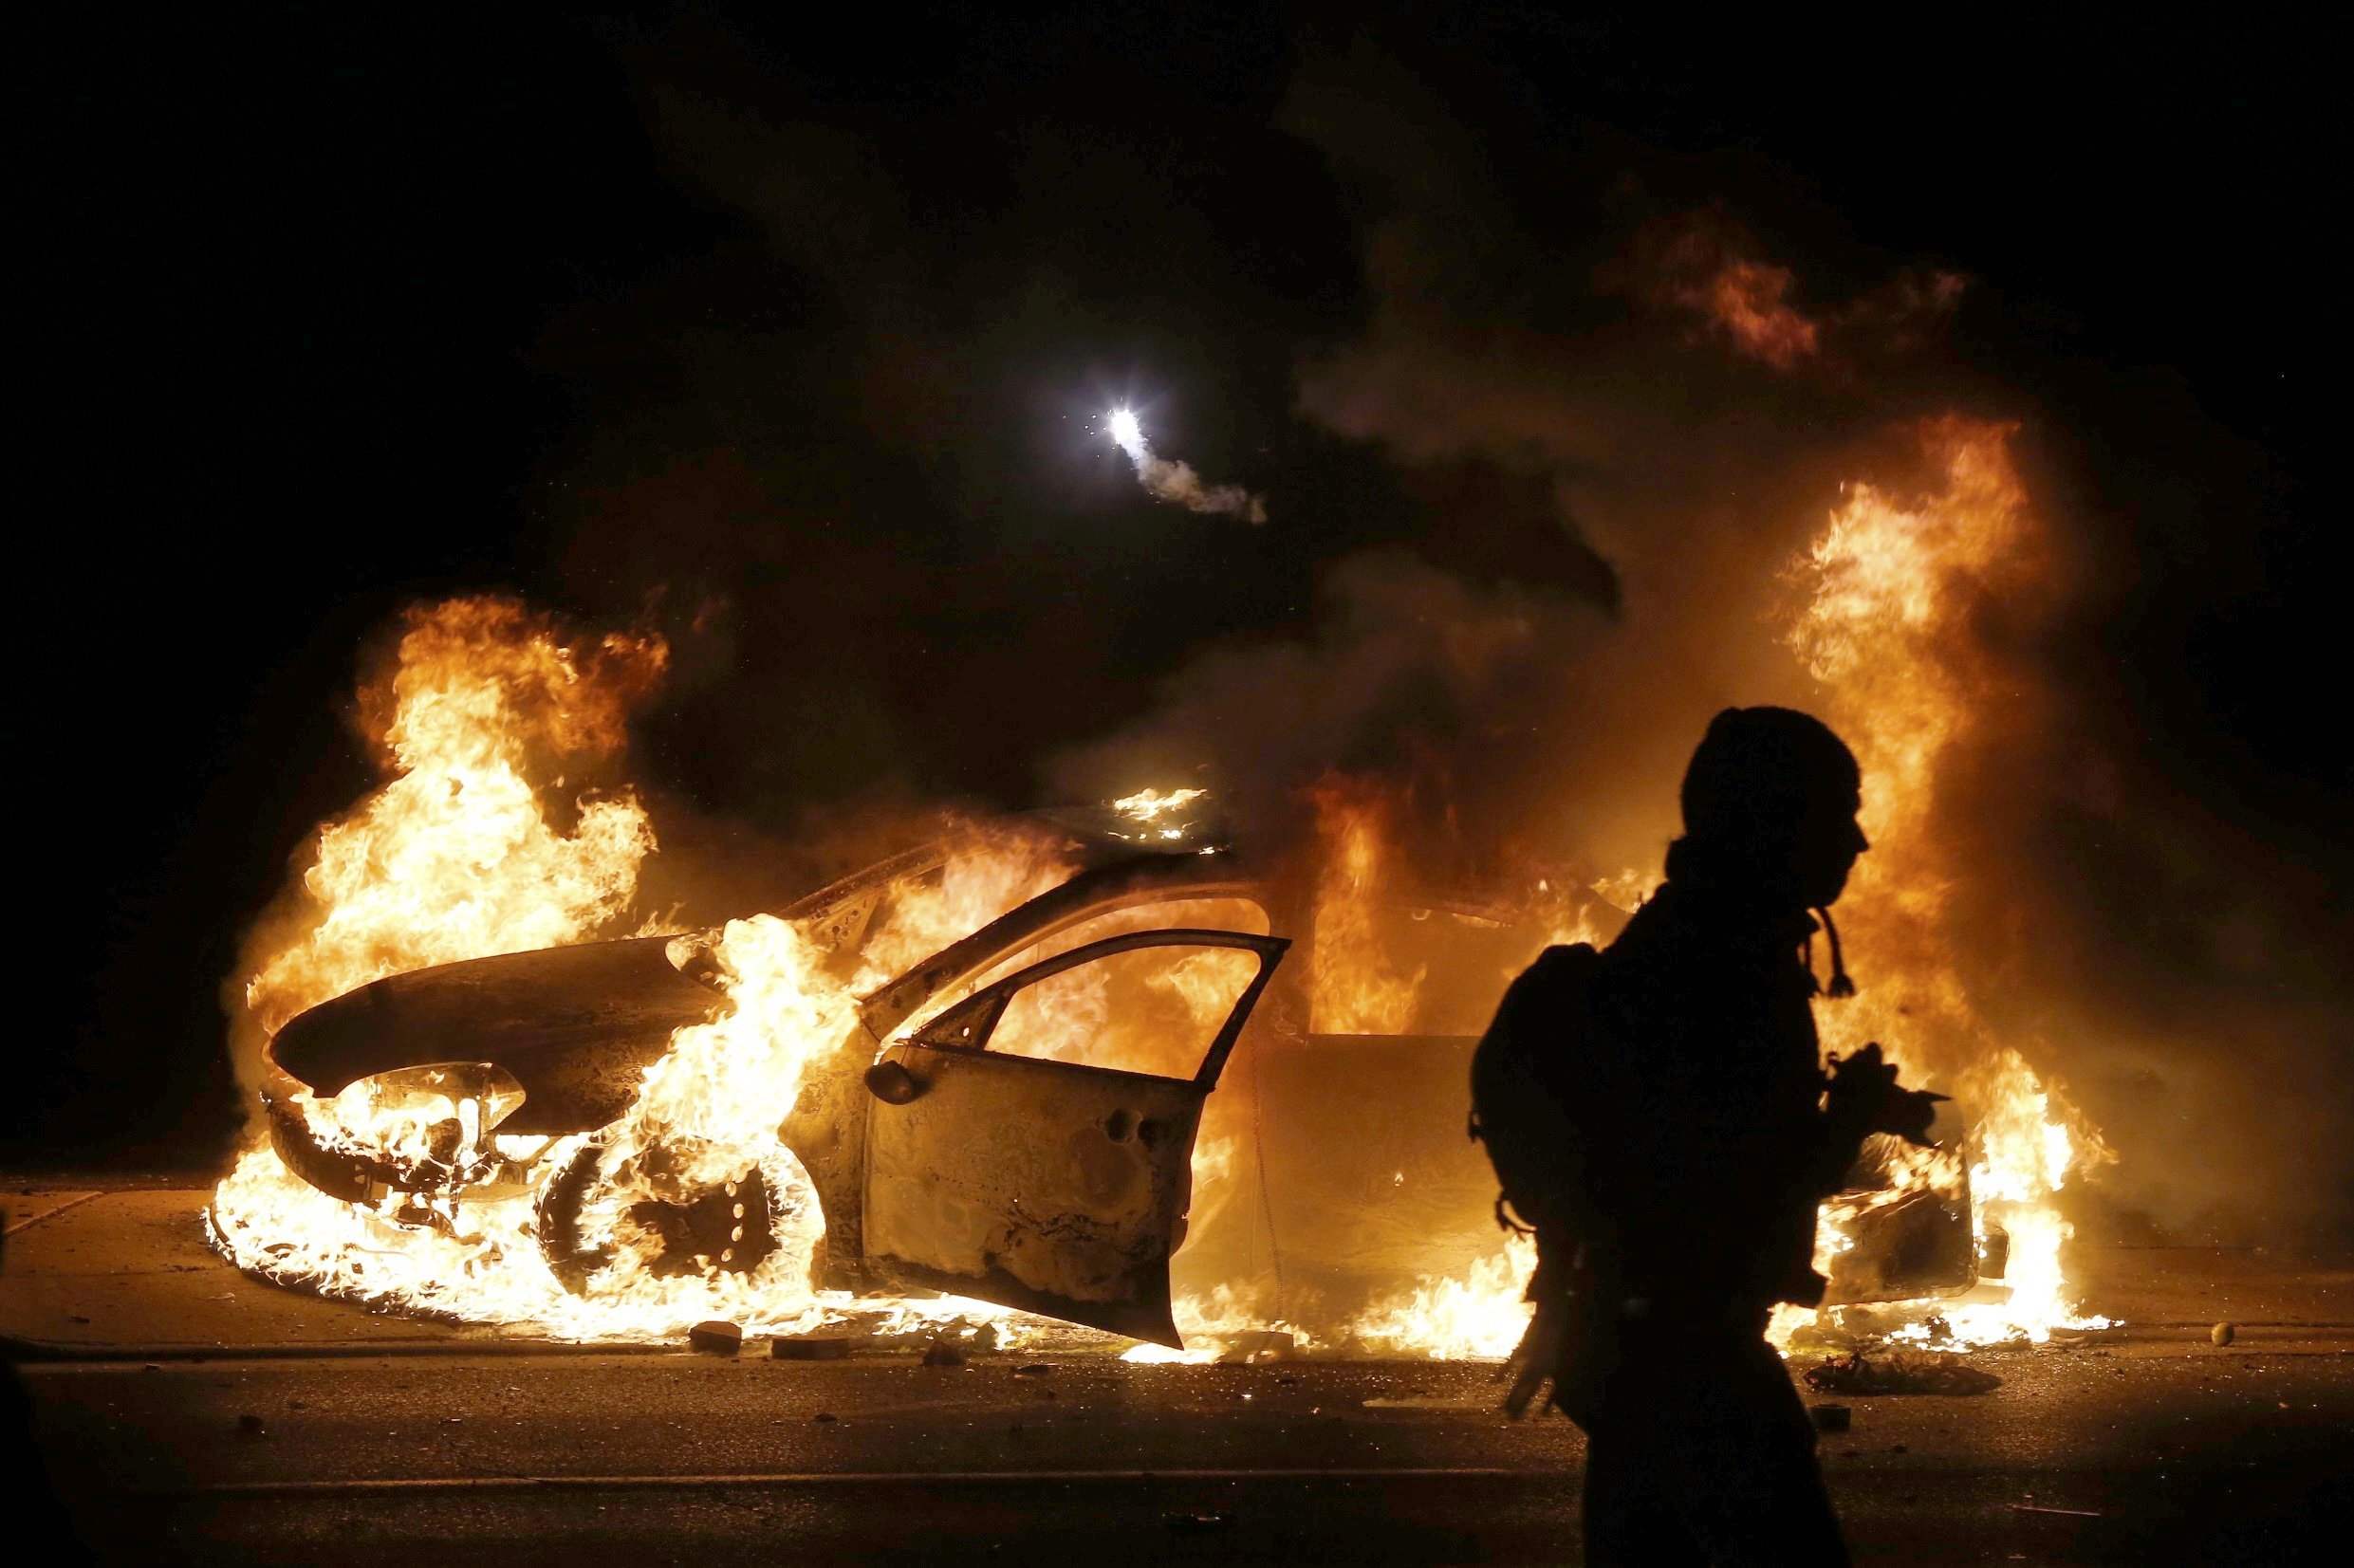 A car burns on the street after a grand jury returned no indictment in the shooting of Michael Brown in Ferguson, Mo. on Nov. 24, 2014.